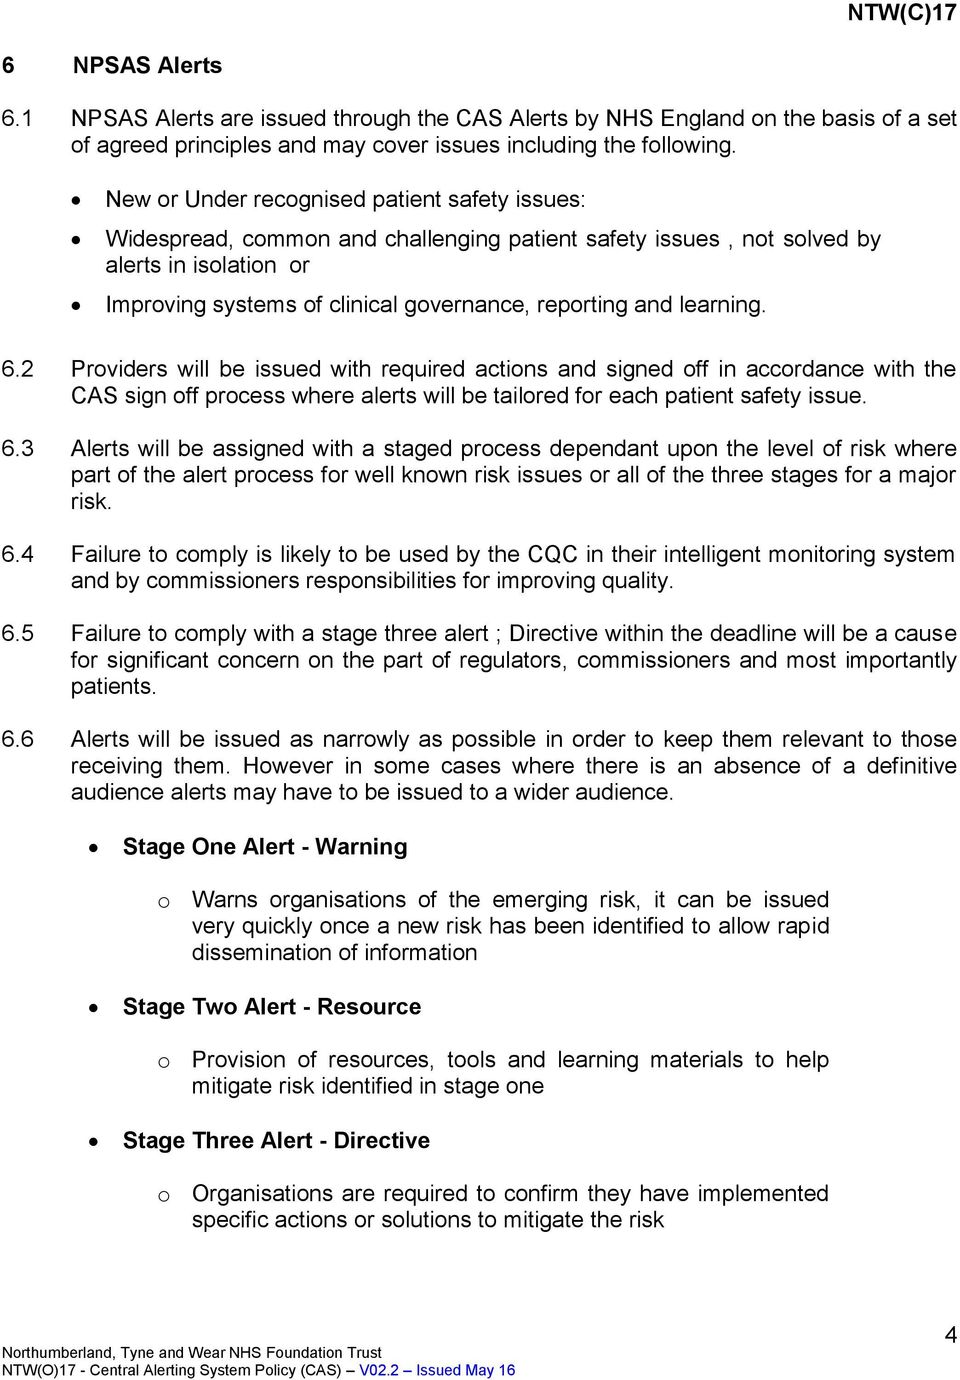 learning. 6.2 Providers will be issued with required actions and signed off in accordance with the CAS sign off process where alerts will be tailored for each patient safety issue. 6.3 Alerts will be assigned with a staged process dependant upon the level of risk where part of the alert process for well known risk issues or all of the three stages for a major risk.